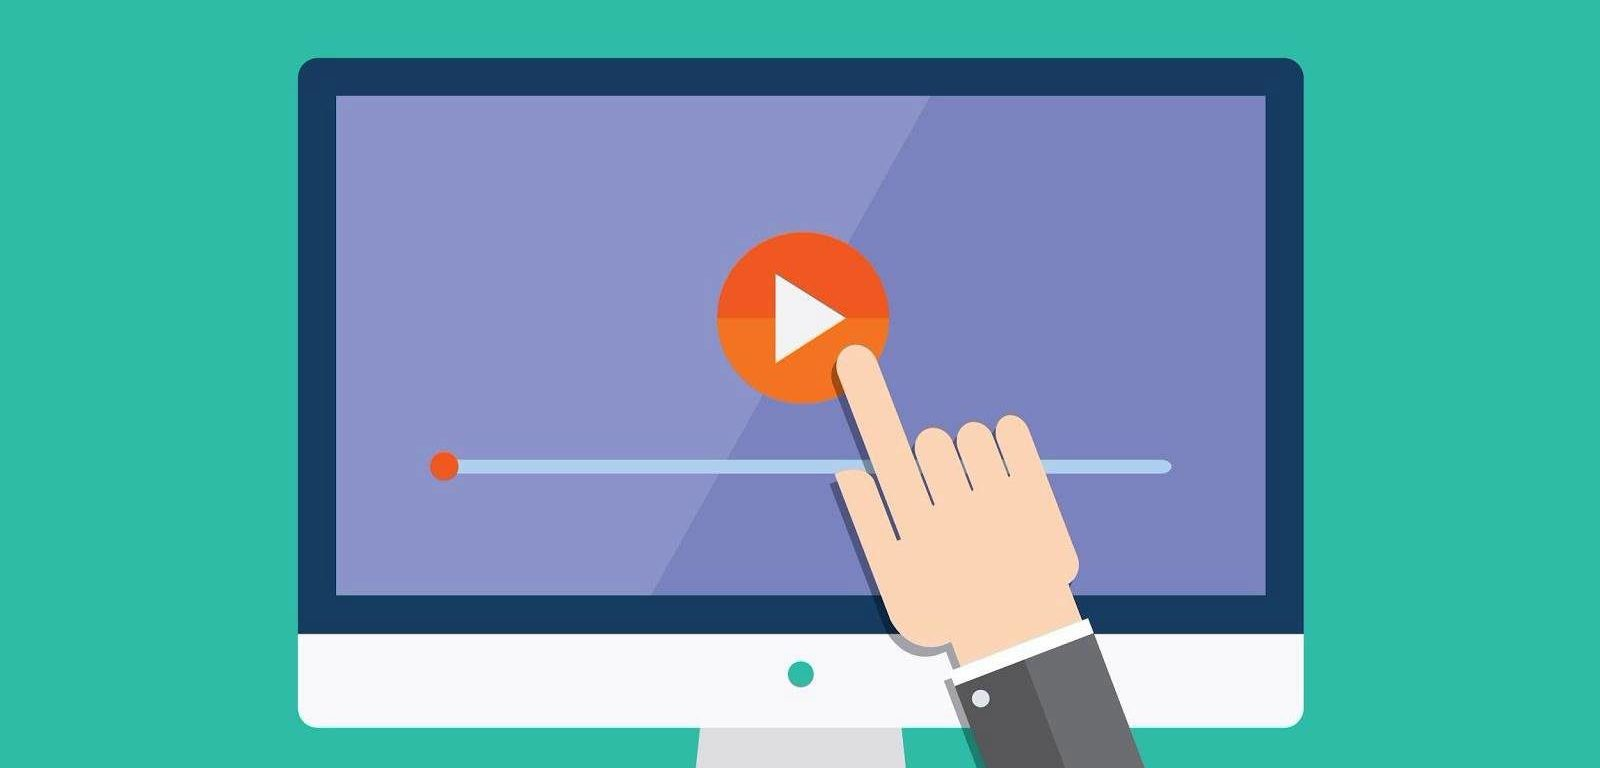 How To Make Tutorial Videos in 2020 | TechRev.me